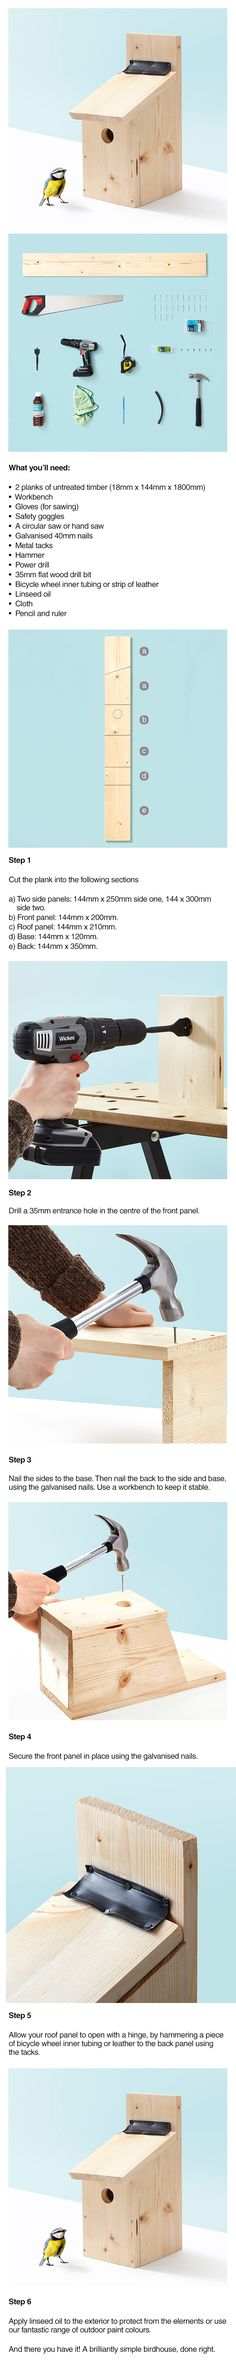 How to make your own Birdhouse.                                                                                                                                                                                 More